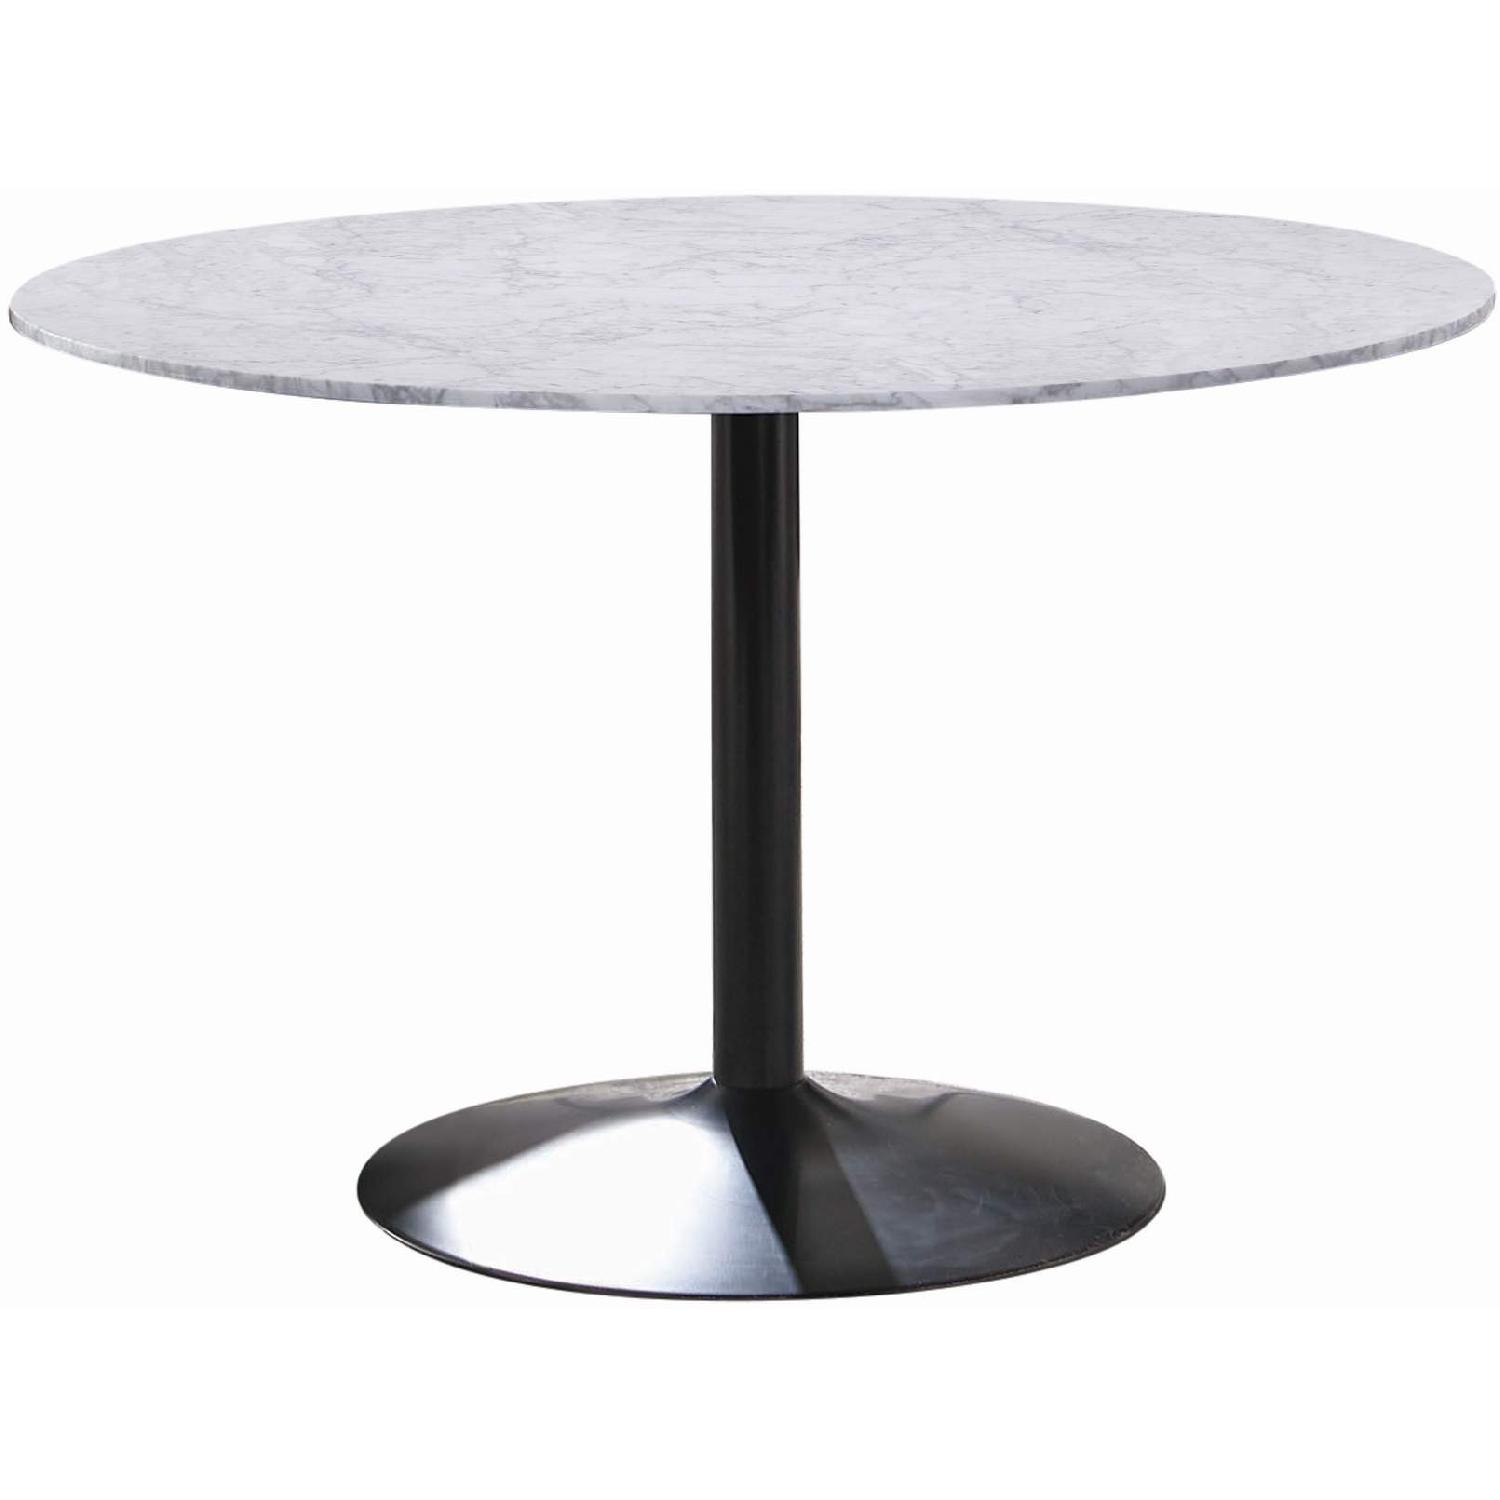 Modern Italian Marble Top Dining Table w/ Black Base - image-0